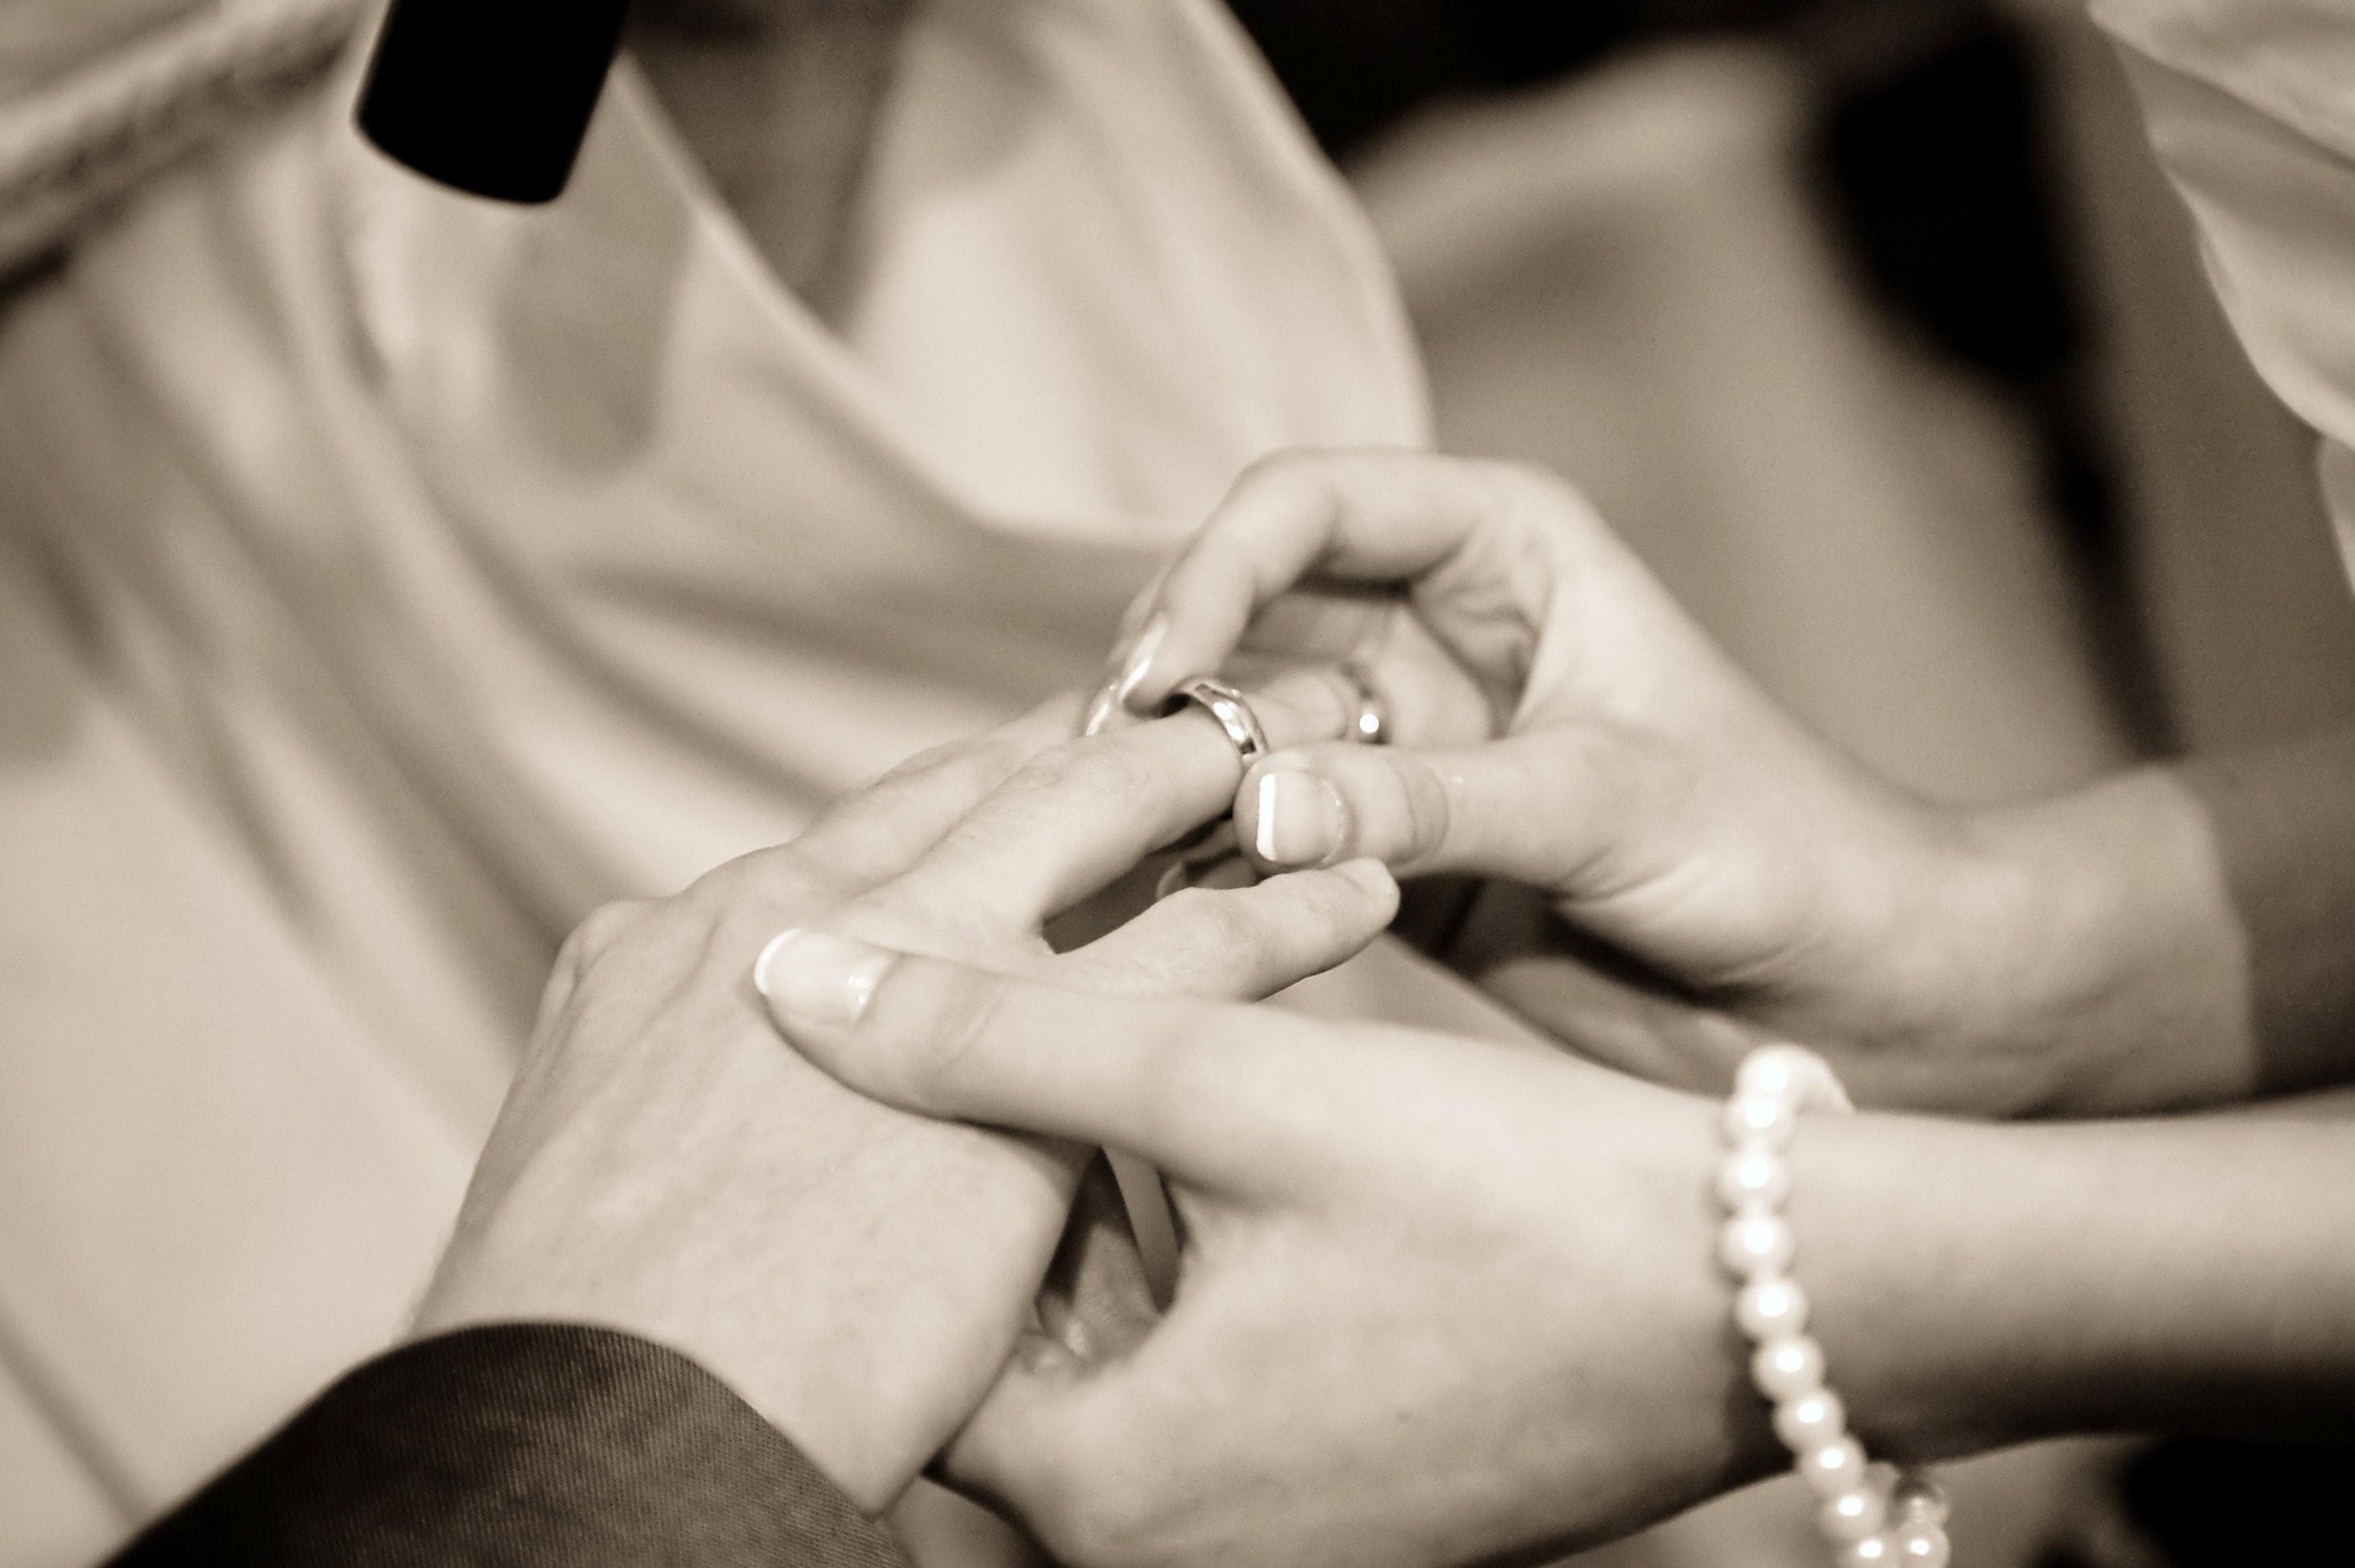 Person Putting Ring on Another Person in Grayscale Photography, Couple, Hands, Love, Marriage, HQ Photo